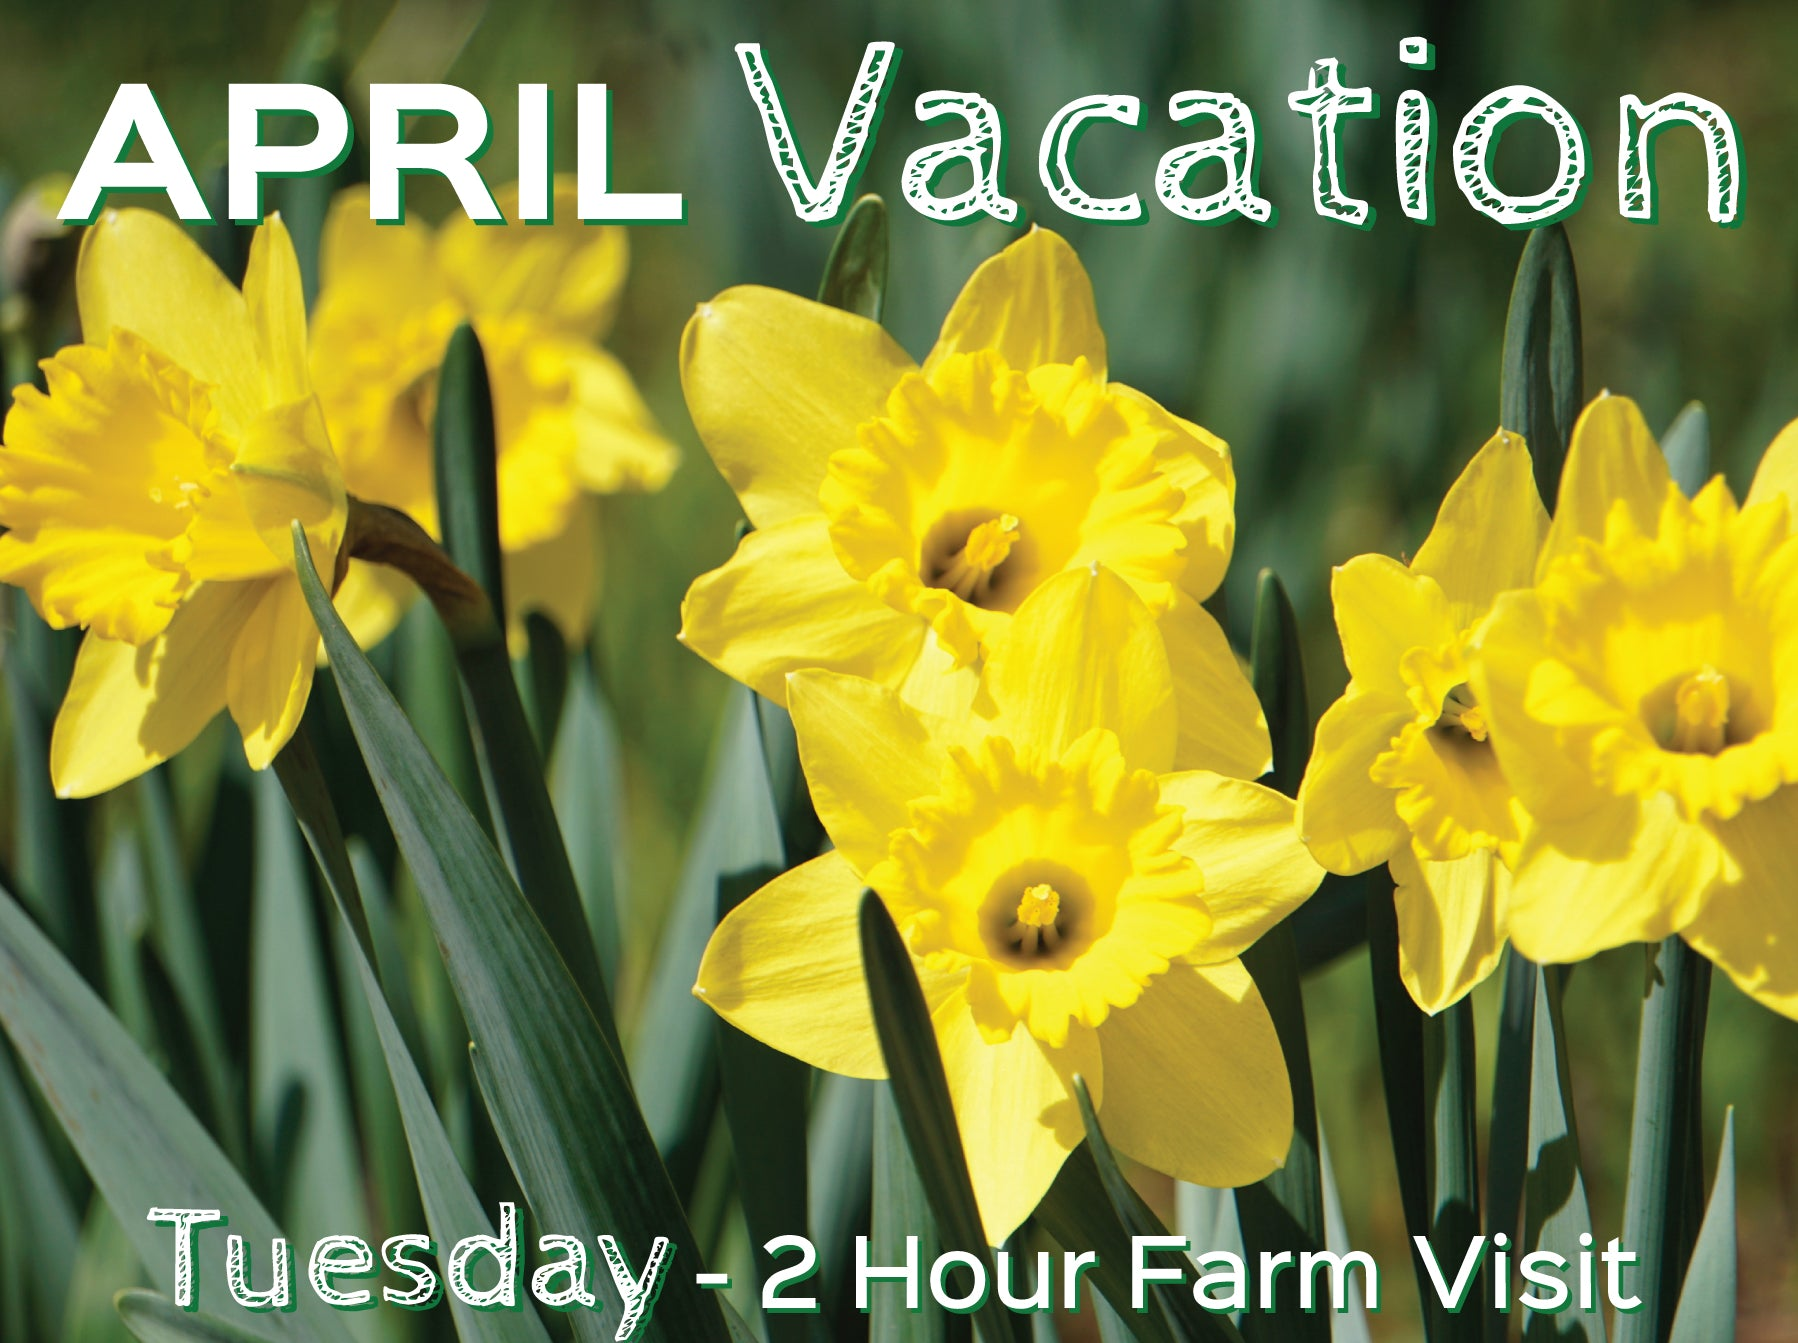 2 Hour Farm Visit Tuesday April 20th-VACATION WEEK